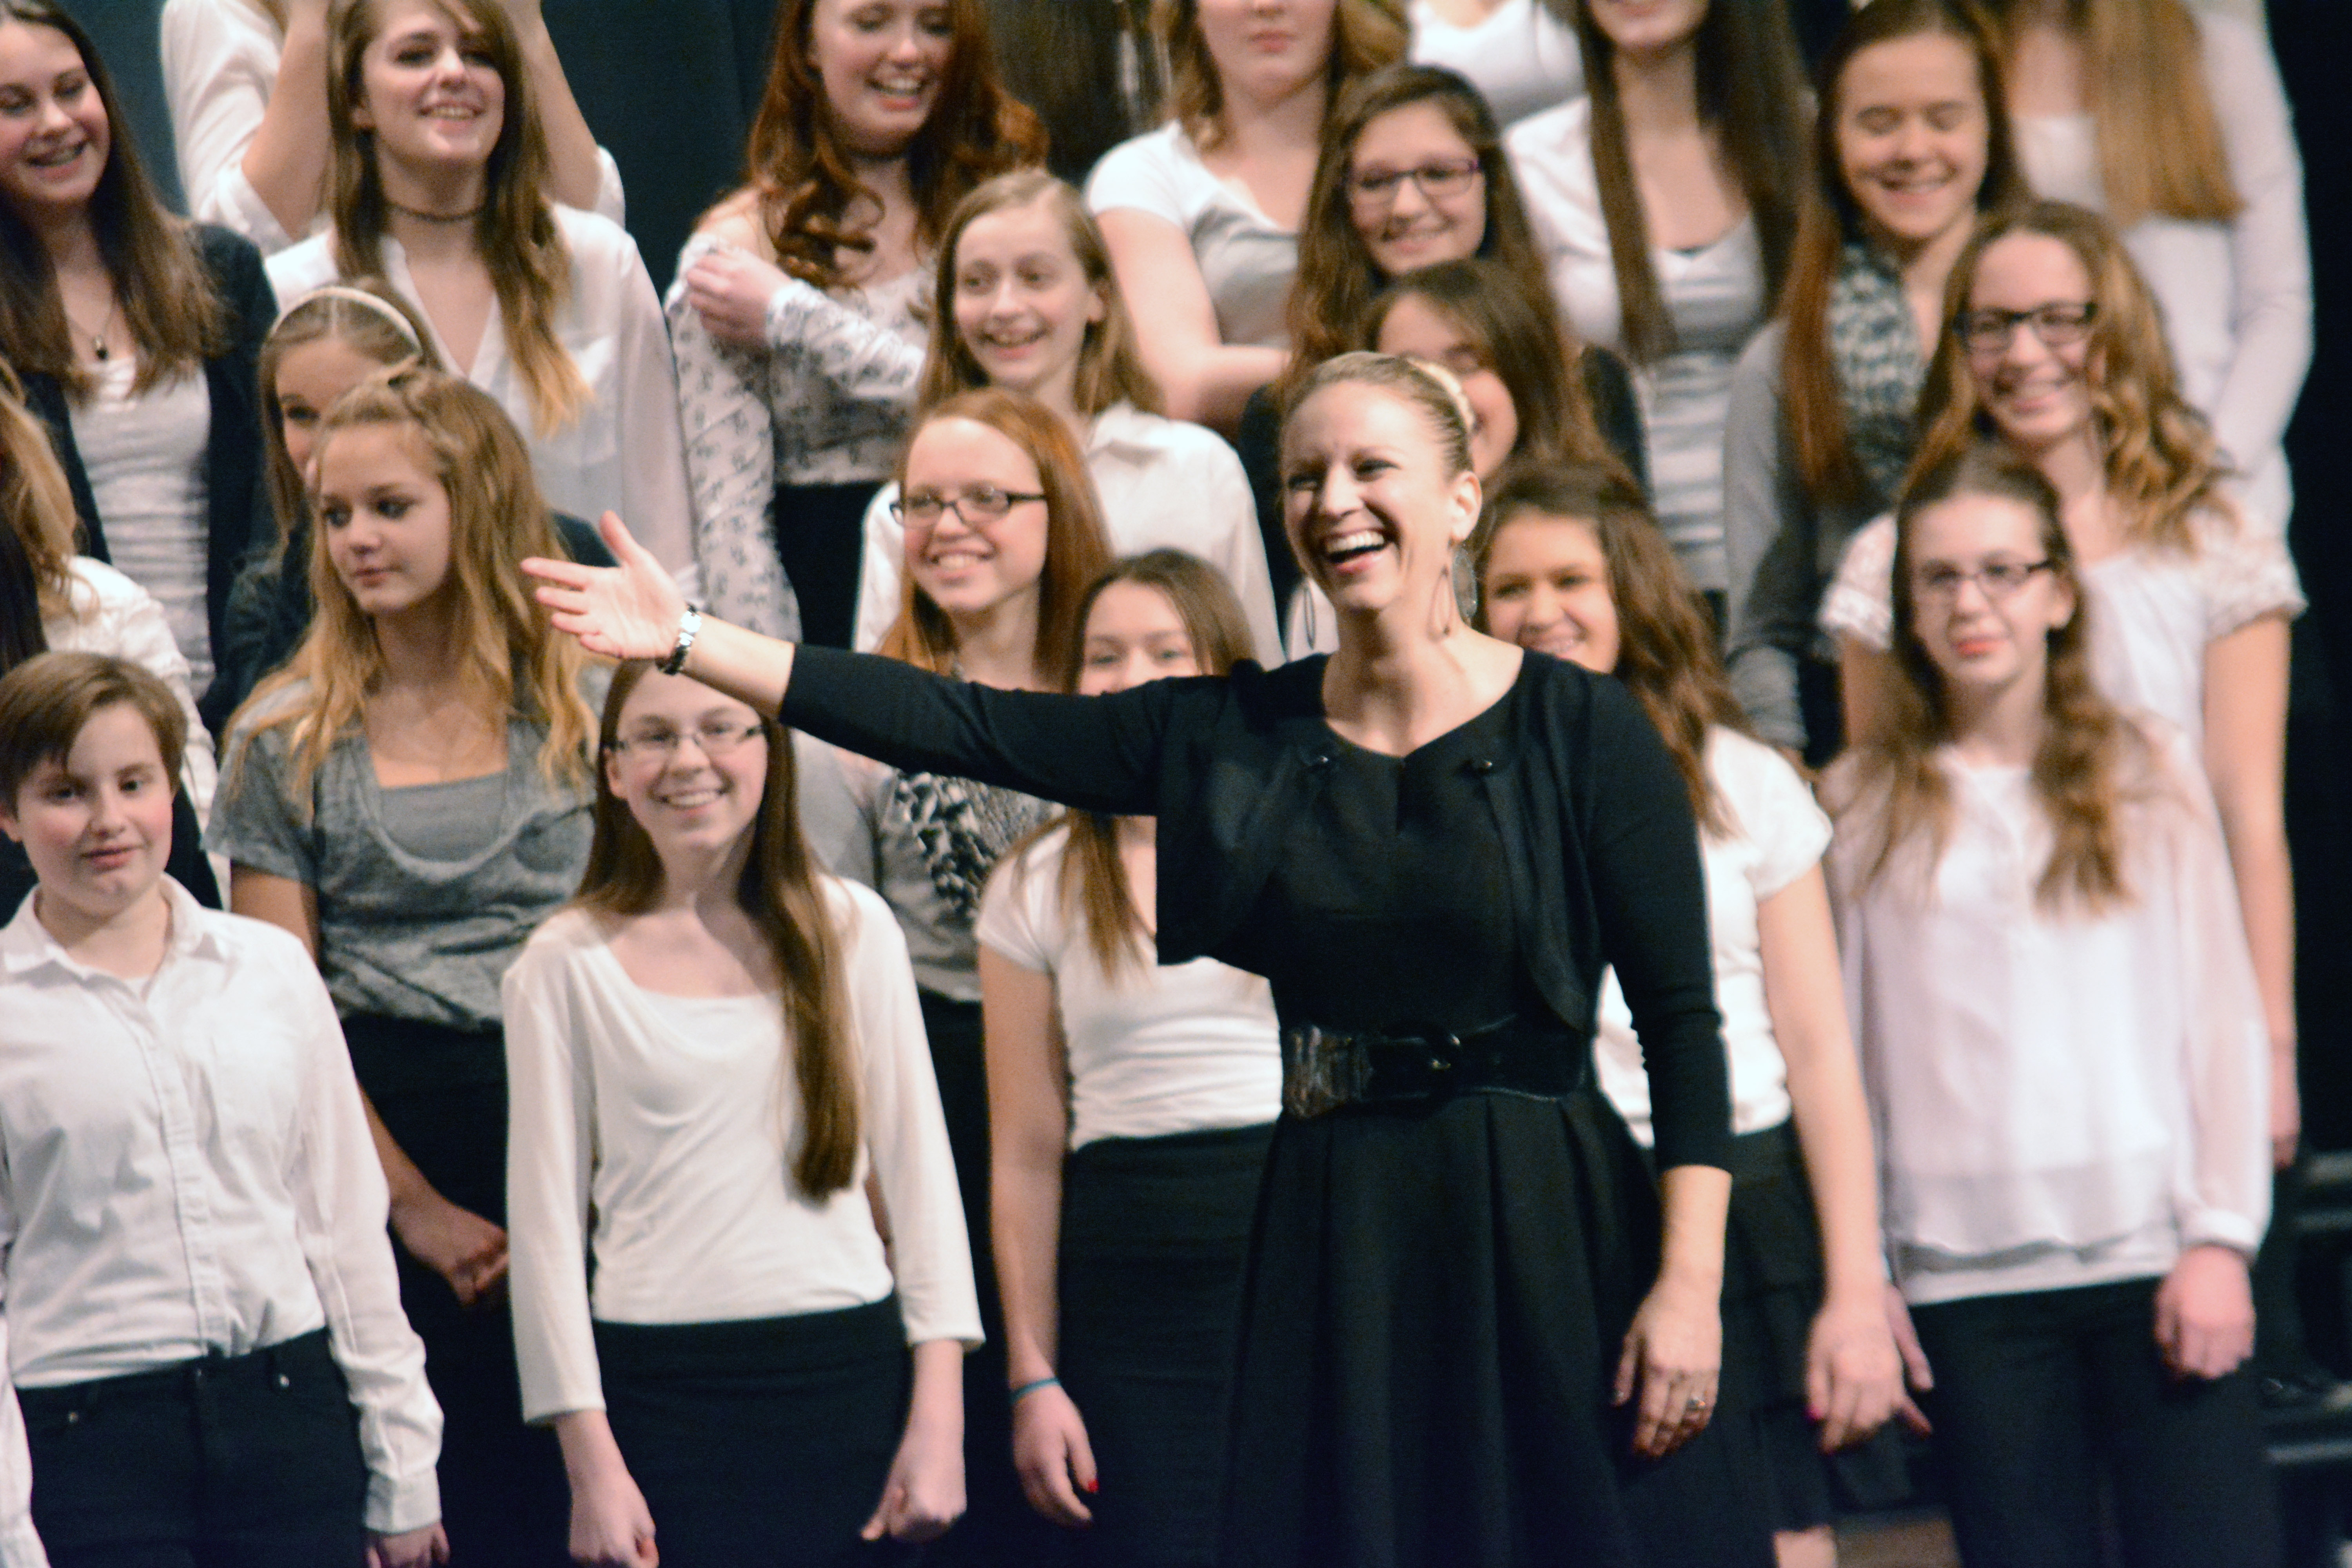 Photos from Mid-Winter concert